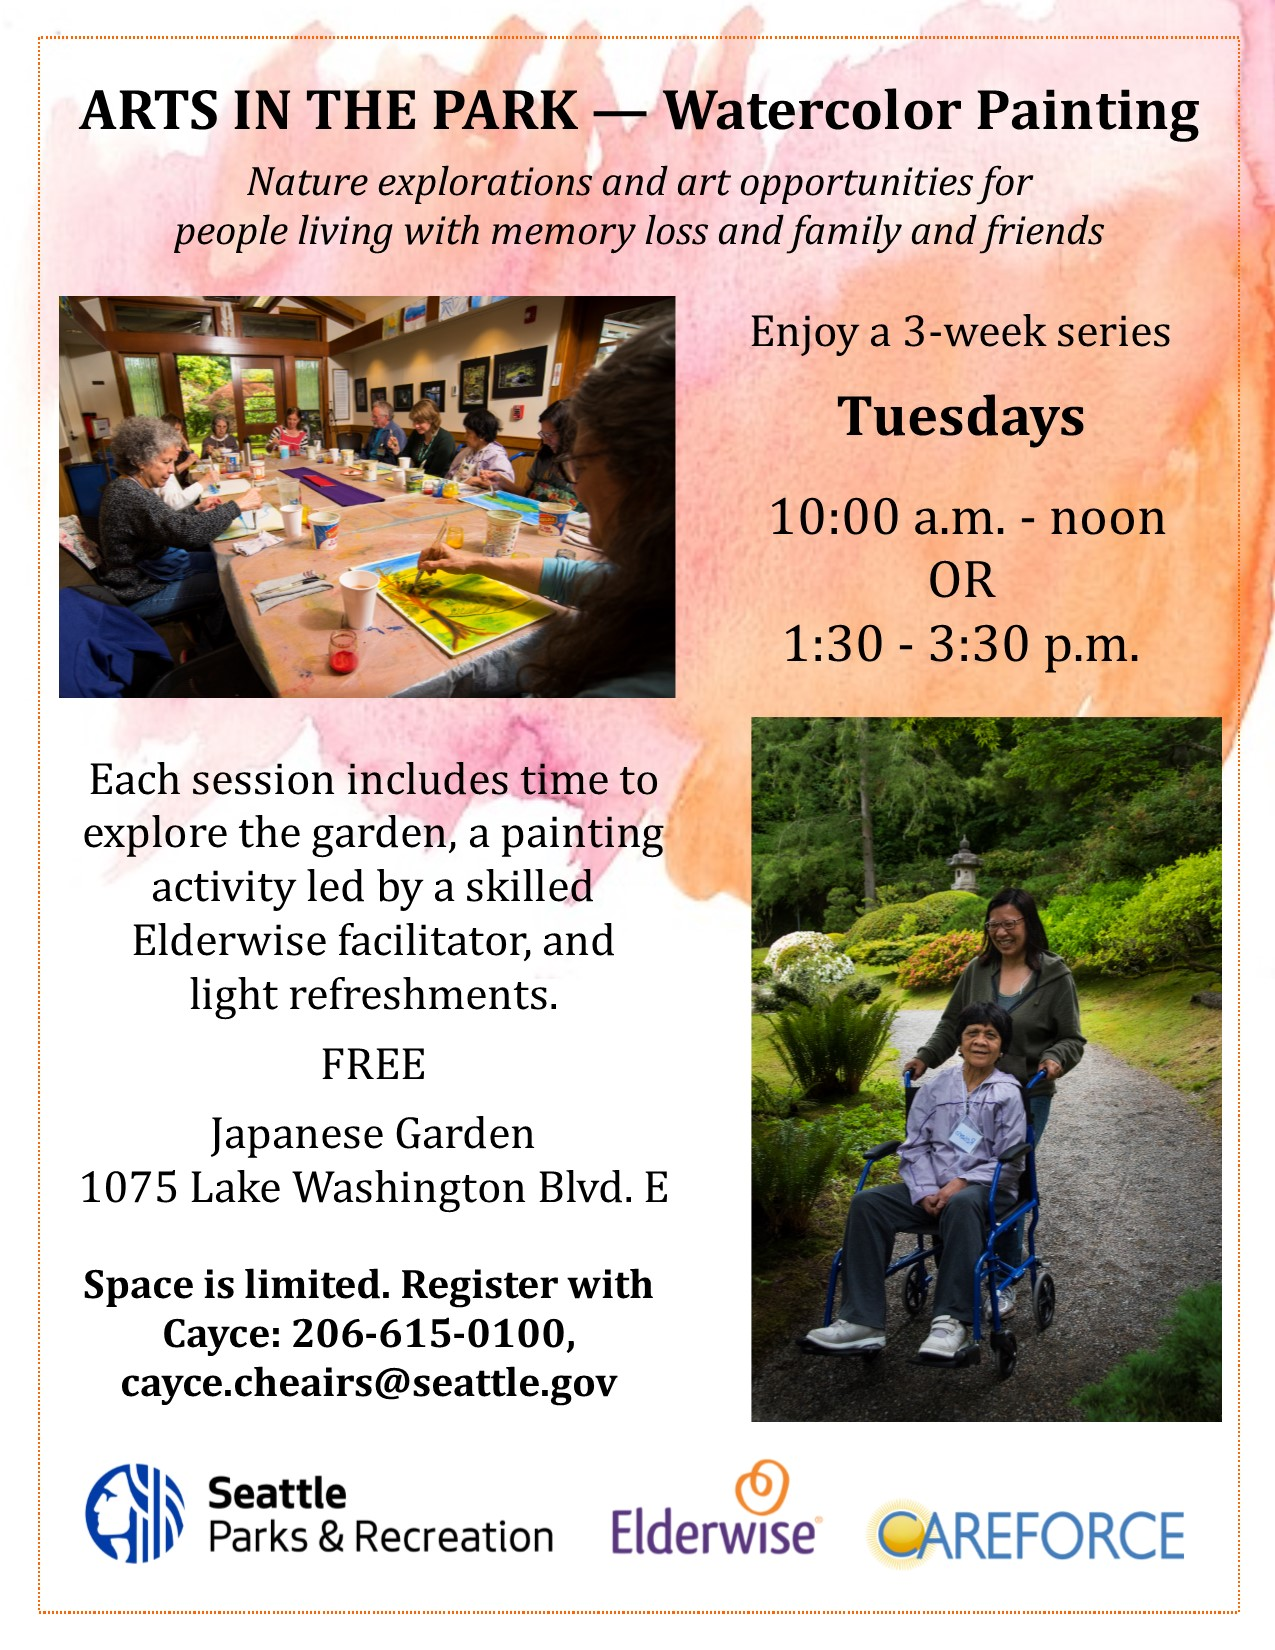 Arts in the Park Japanese Garden Flyer Generic Free.jpg